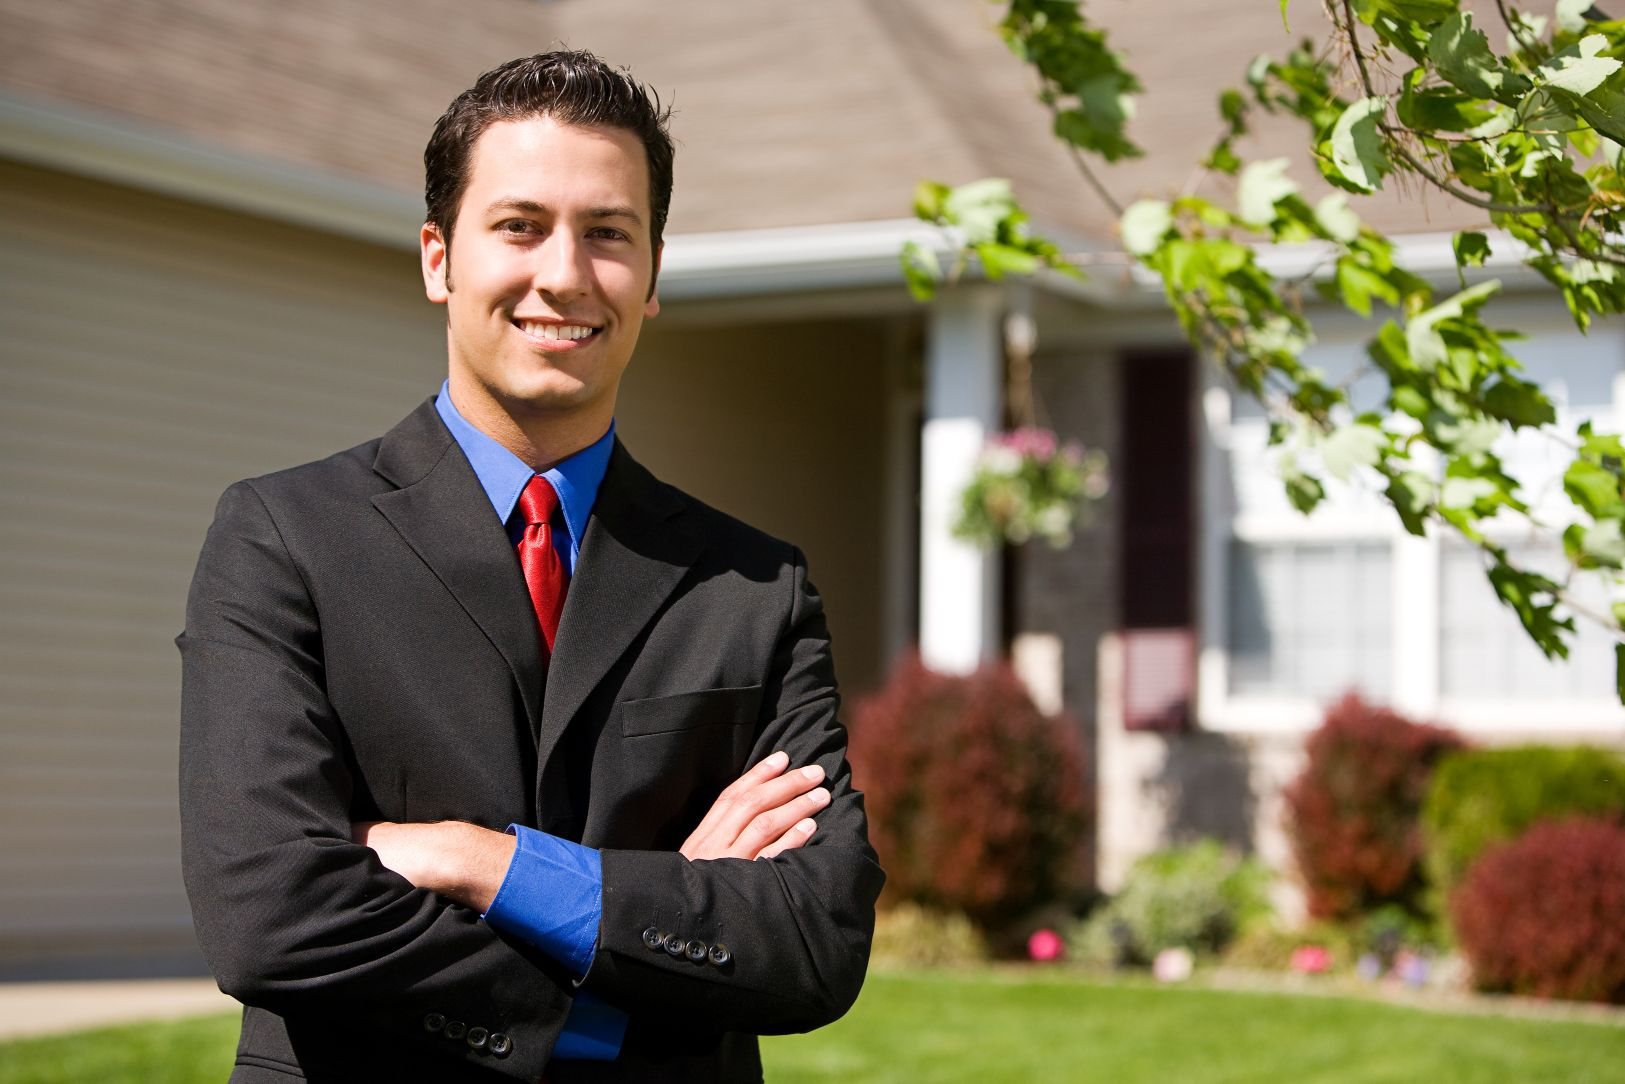 courtier immobilier les rivieres